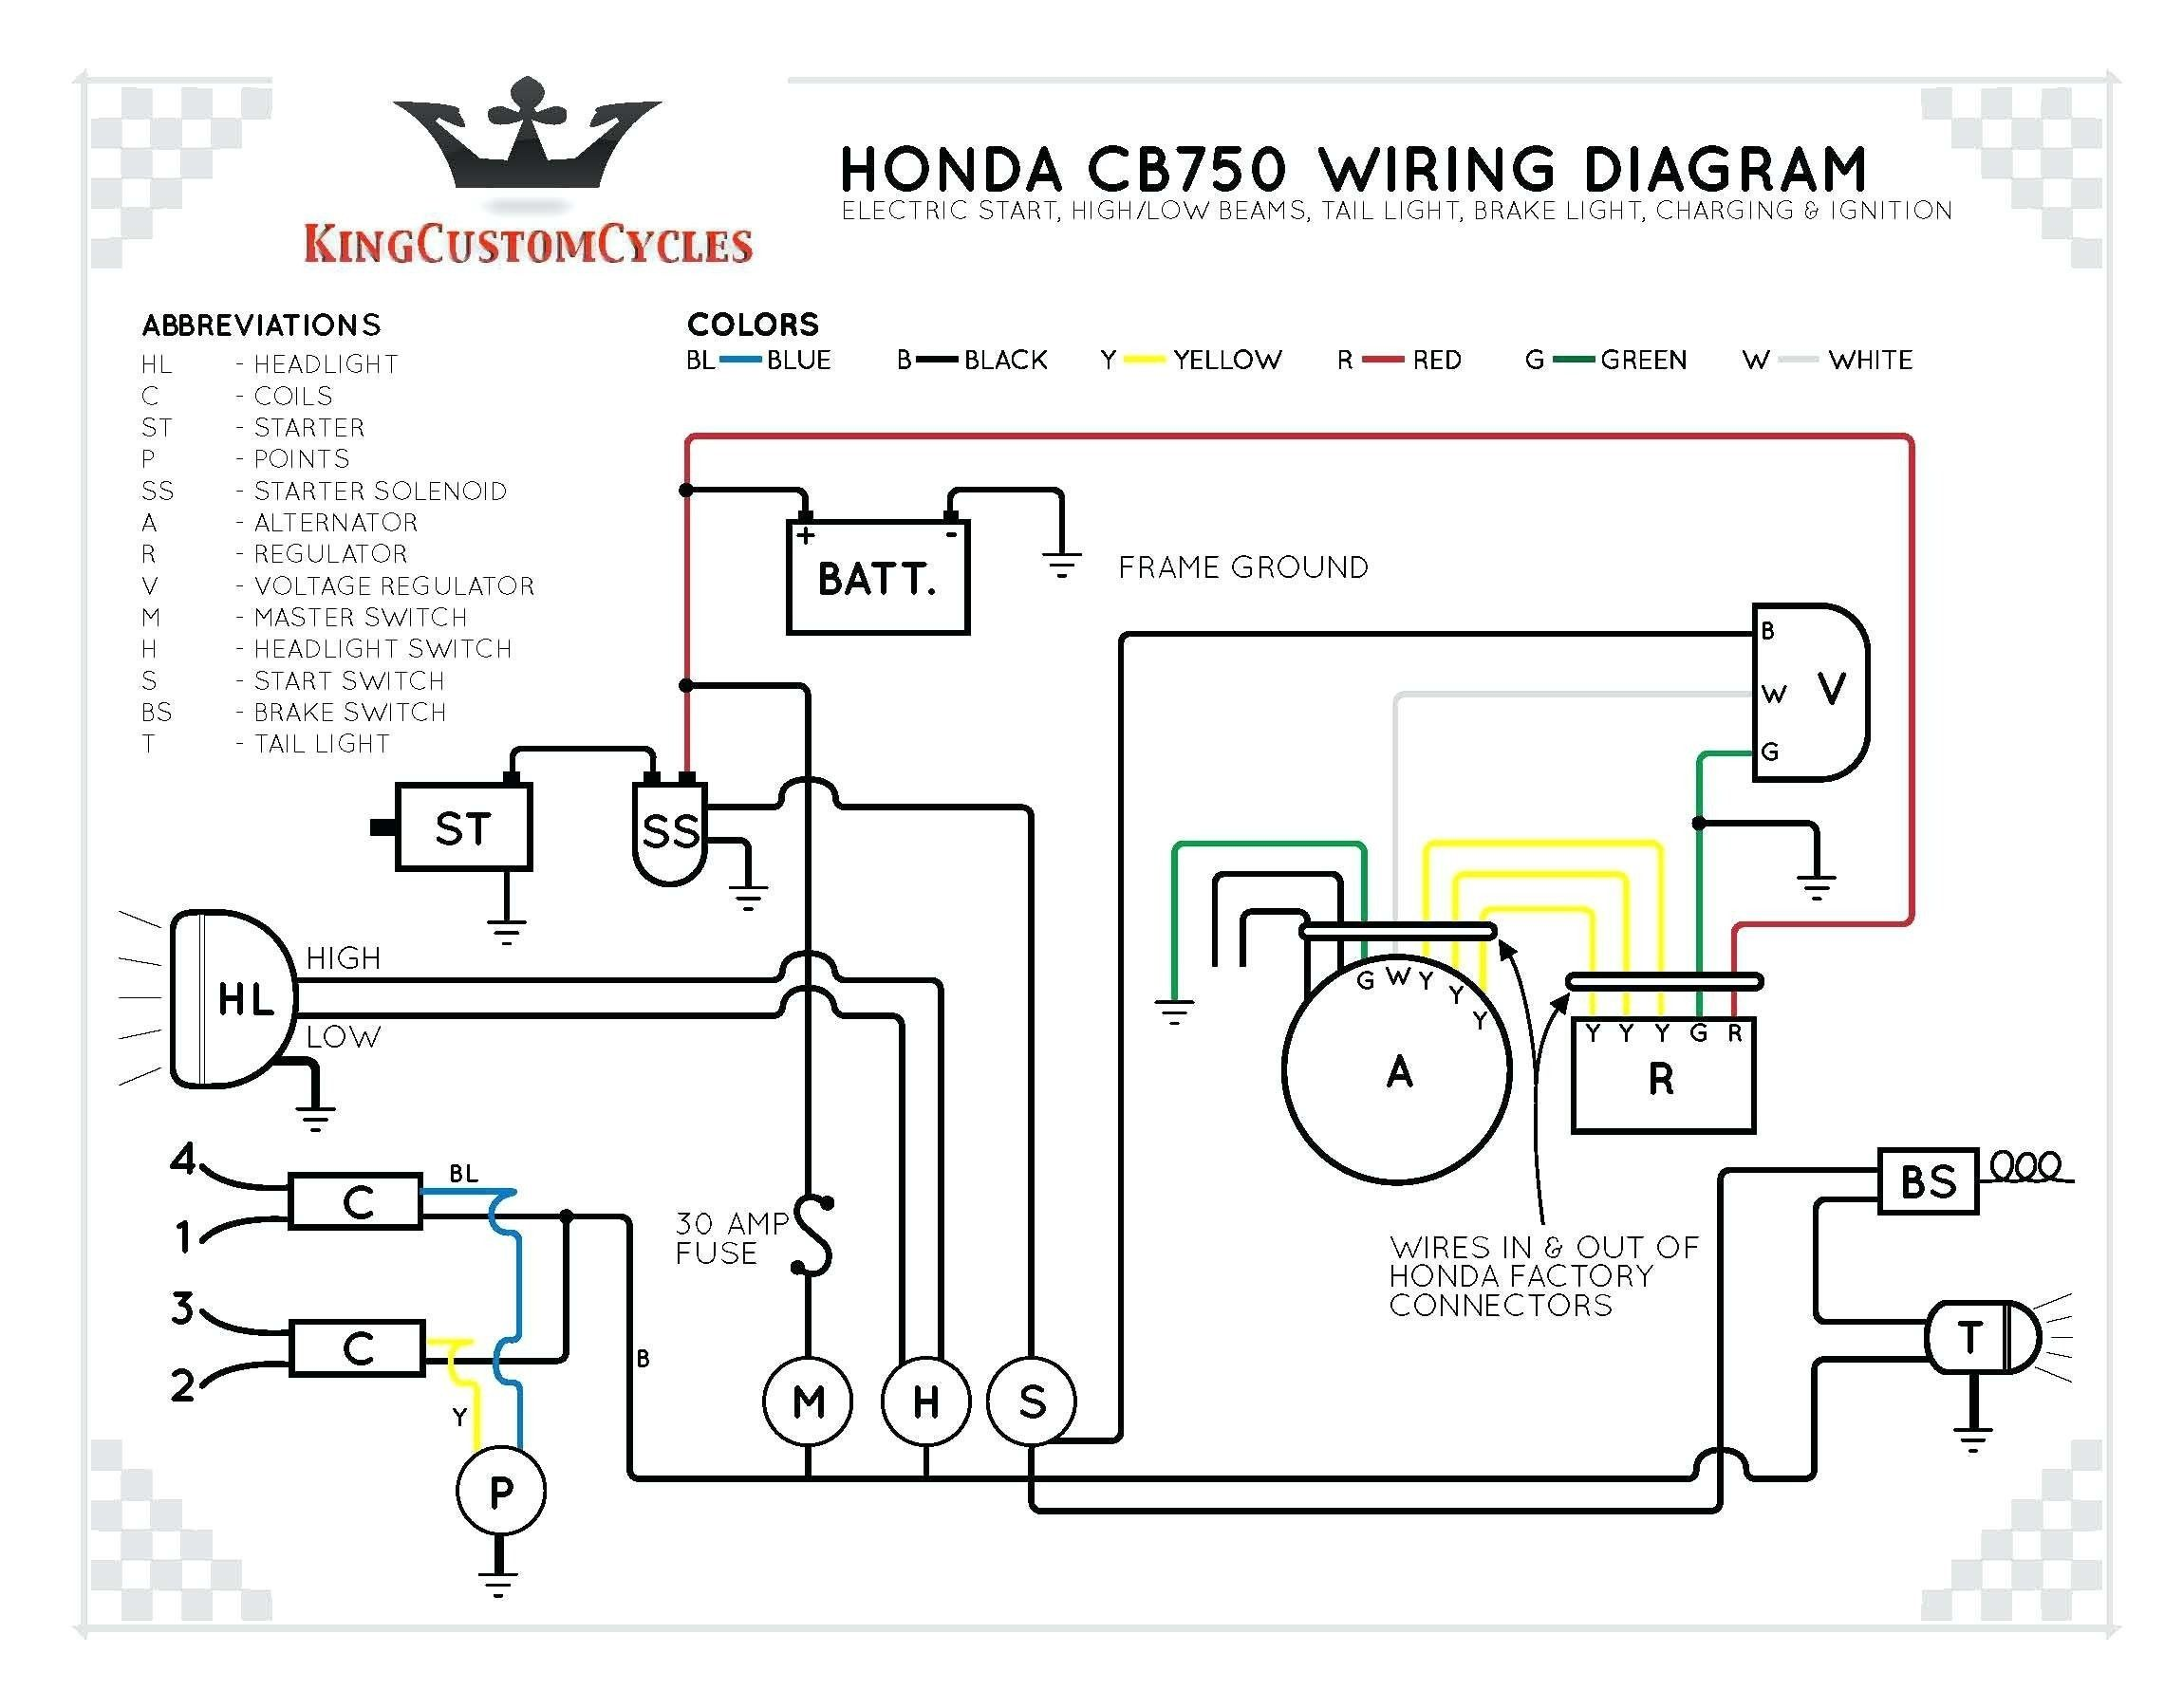 Push Button Starter Switch Wiring Diagram Elegant In 2020 Diagram Cb750 Honda Cb750